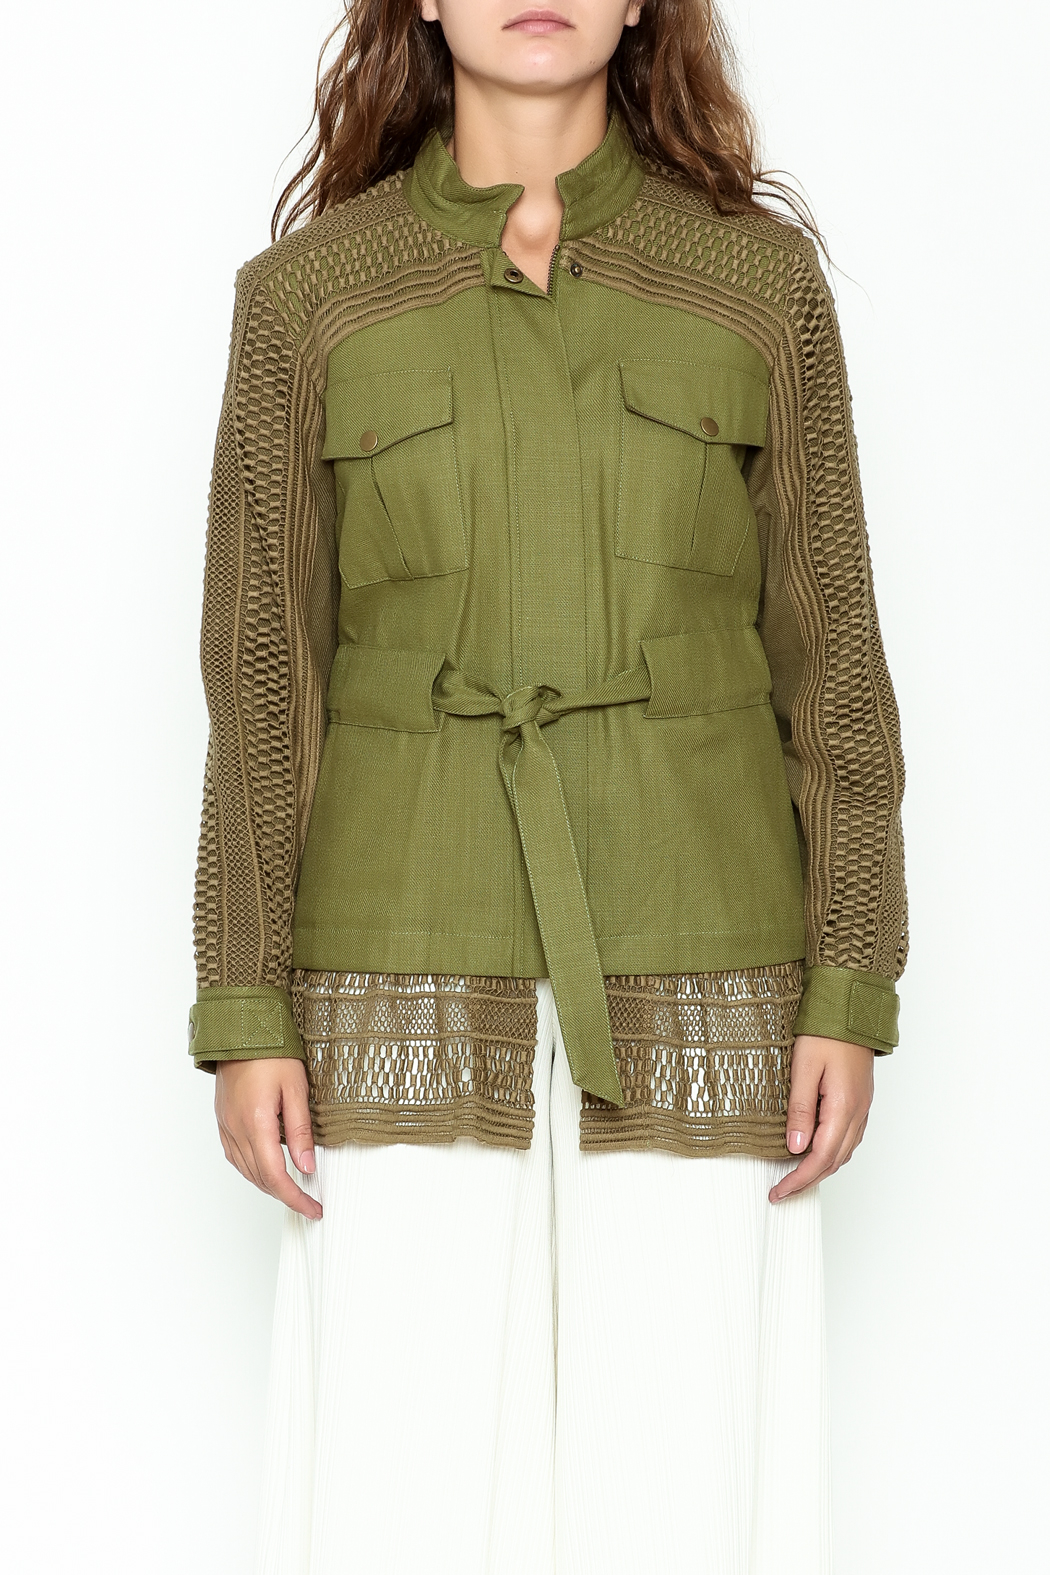 SEA Baja Lace Military Jacket - Front Full Image